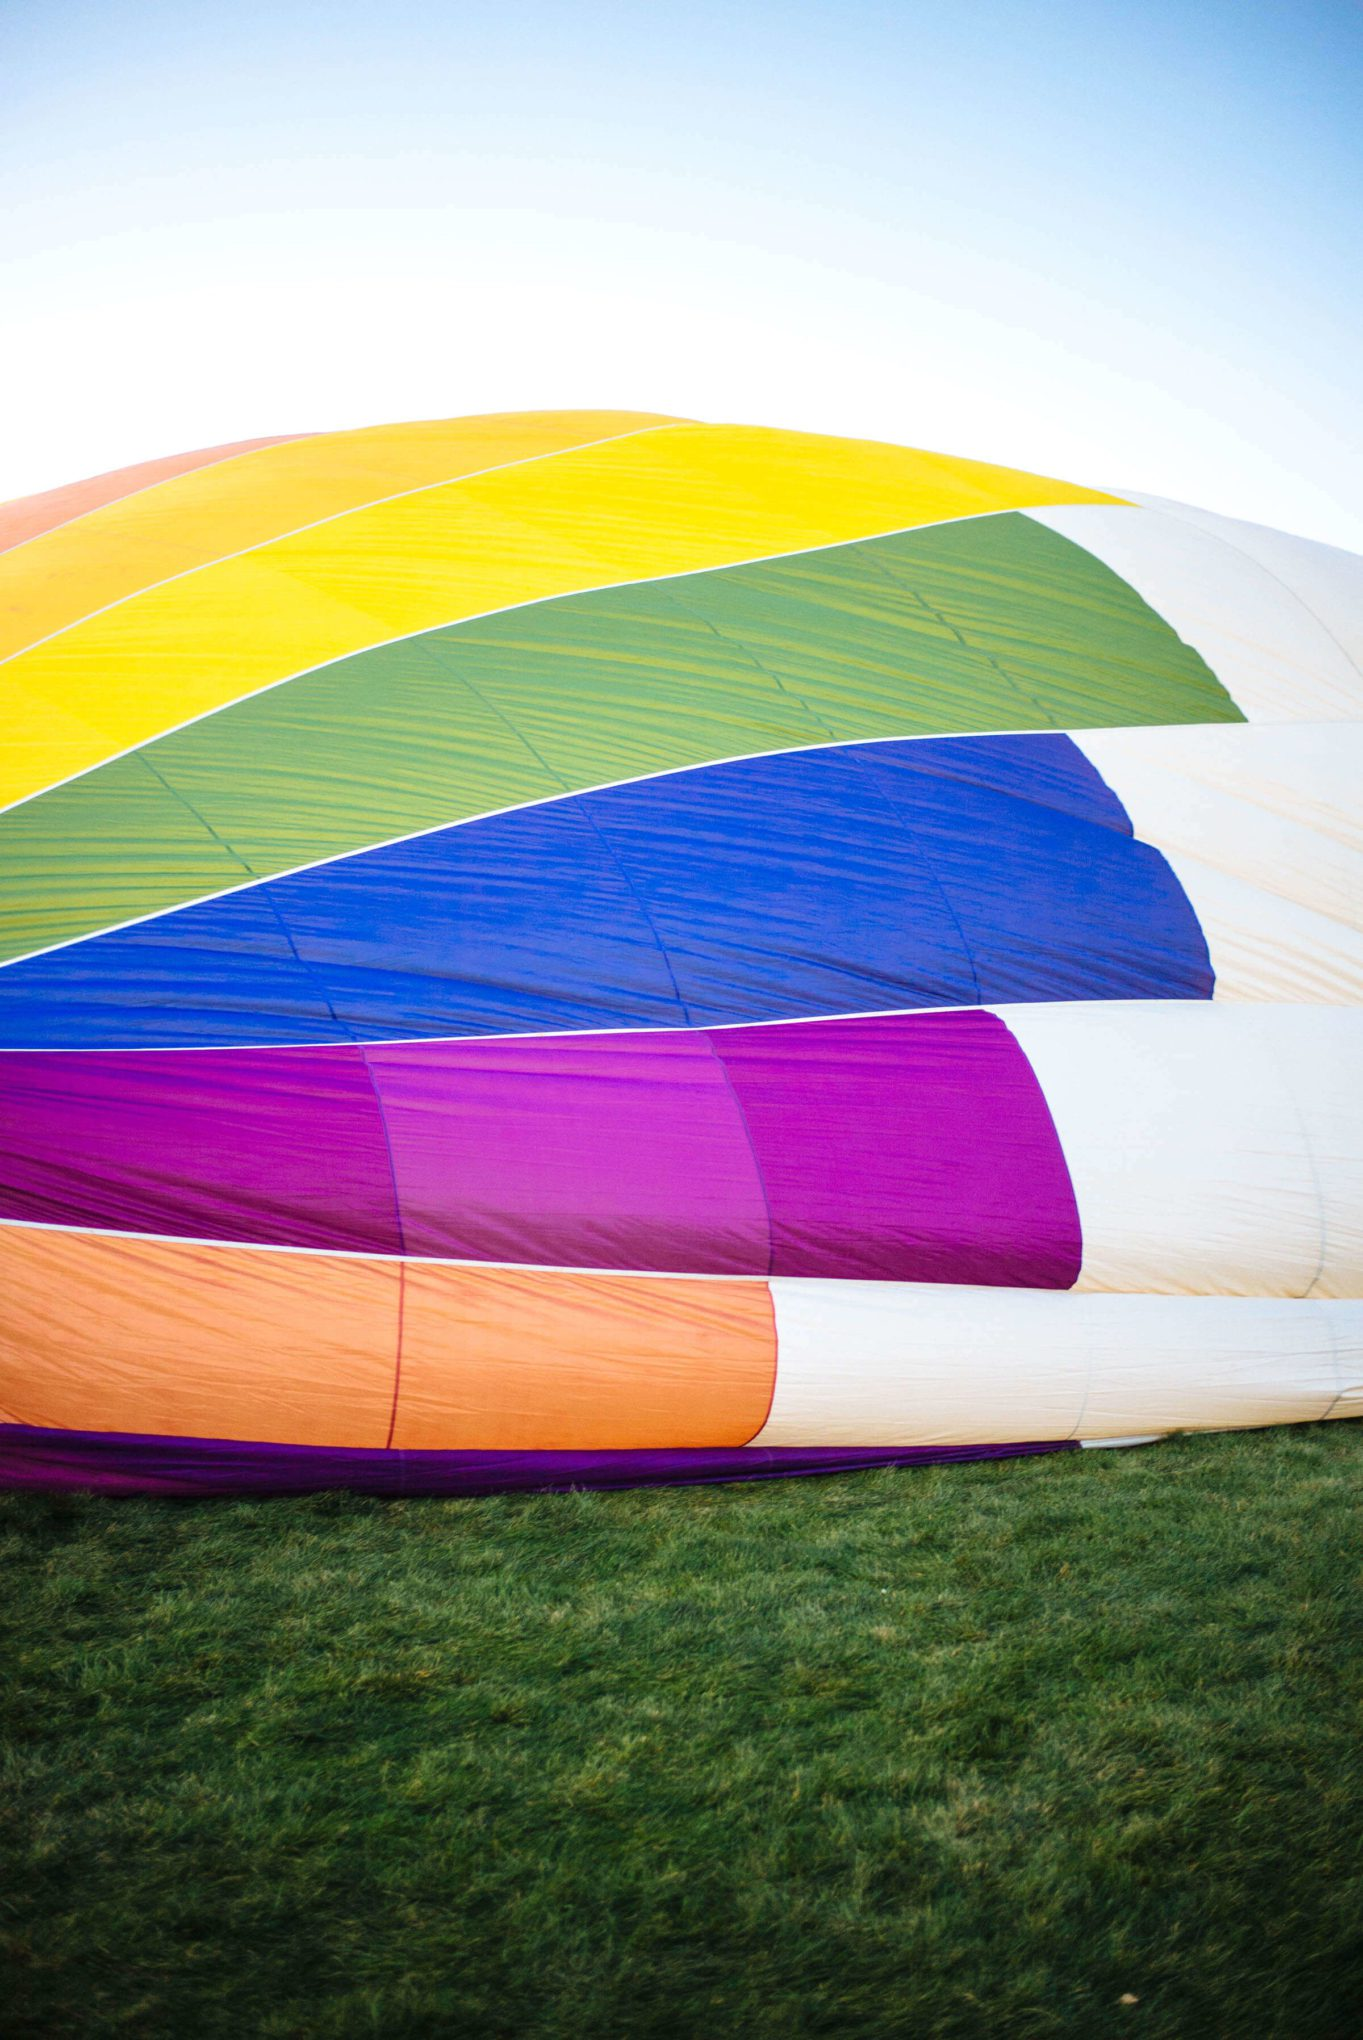 The Taste Edit watches the Albuquerque International Balloon Fiesta inflates balloons.